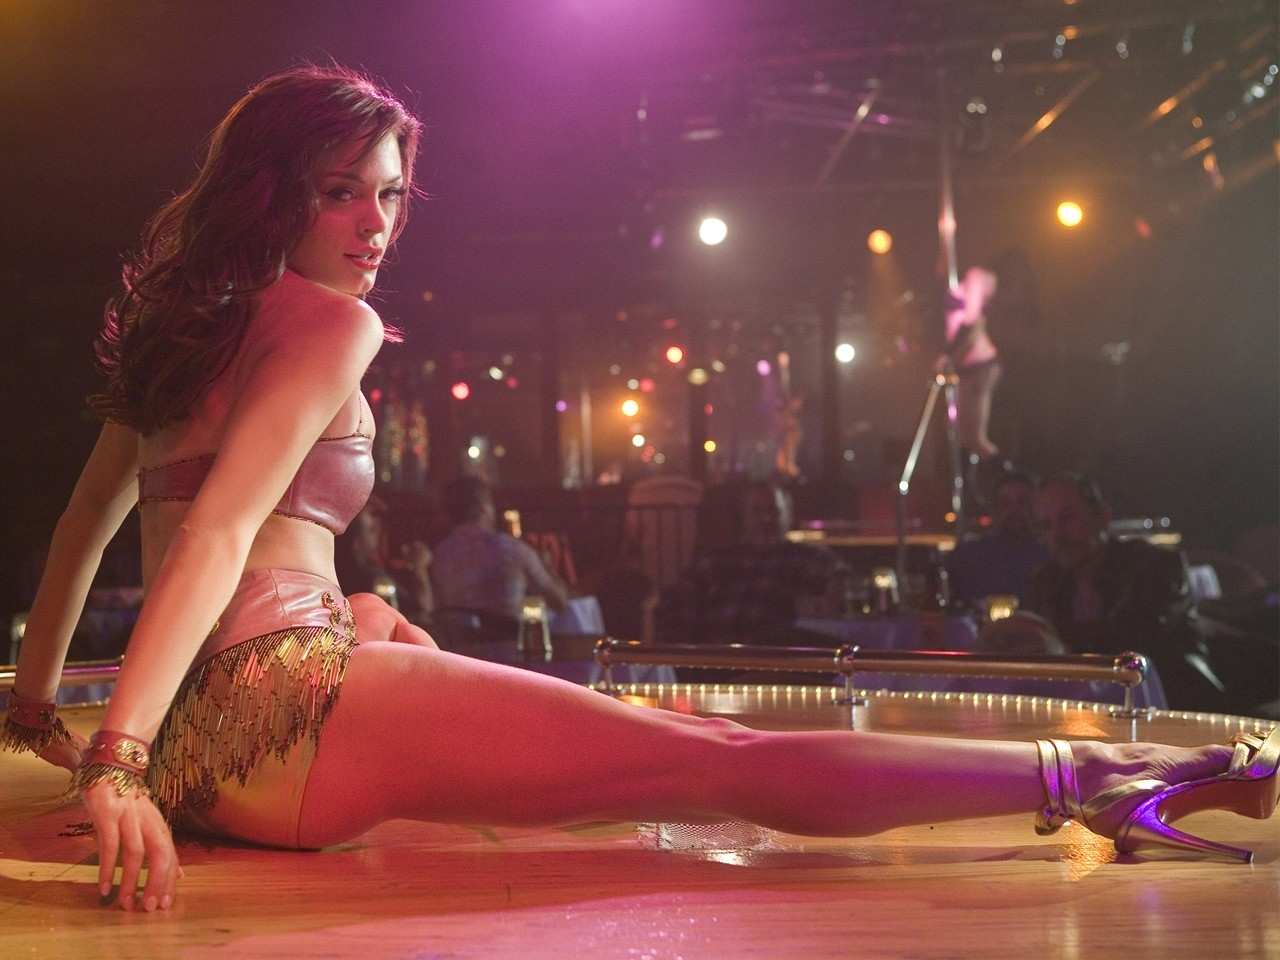 Wallpaper del film Grindhouse con Rose McGowan in versione stripper